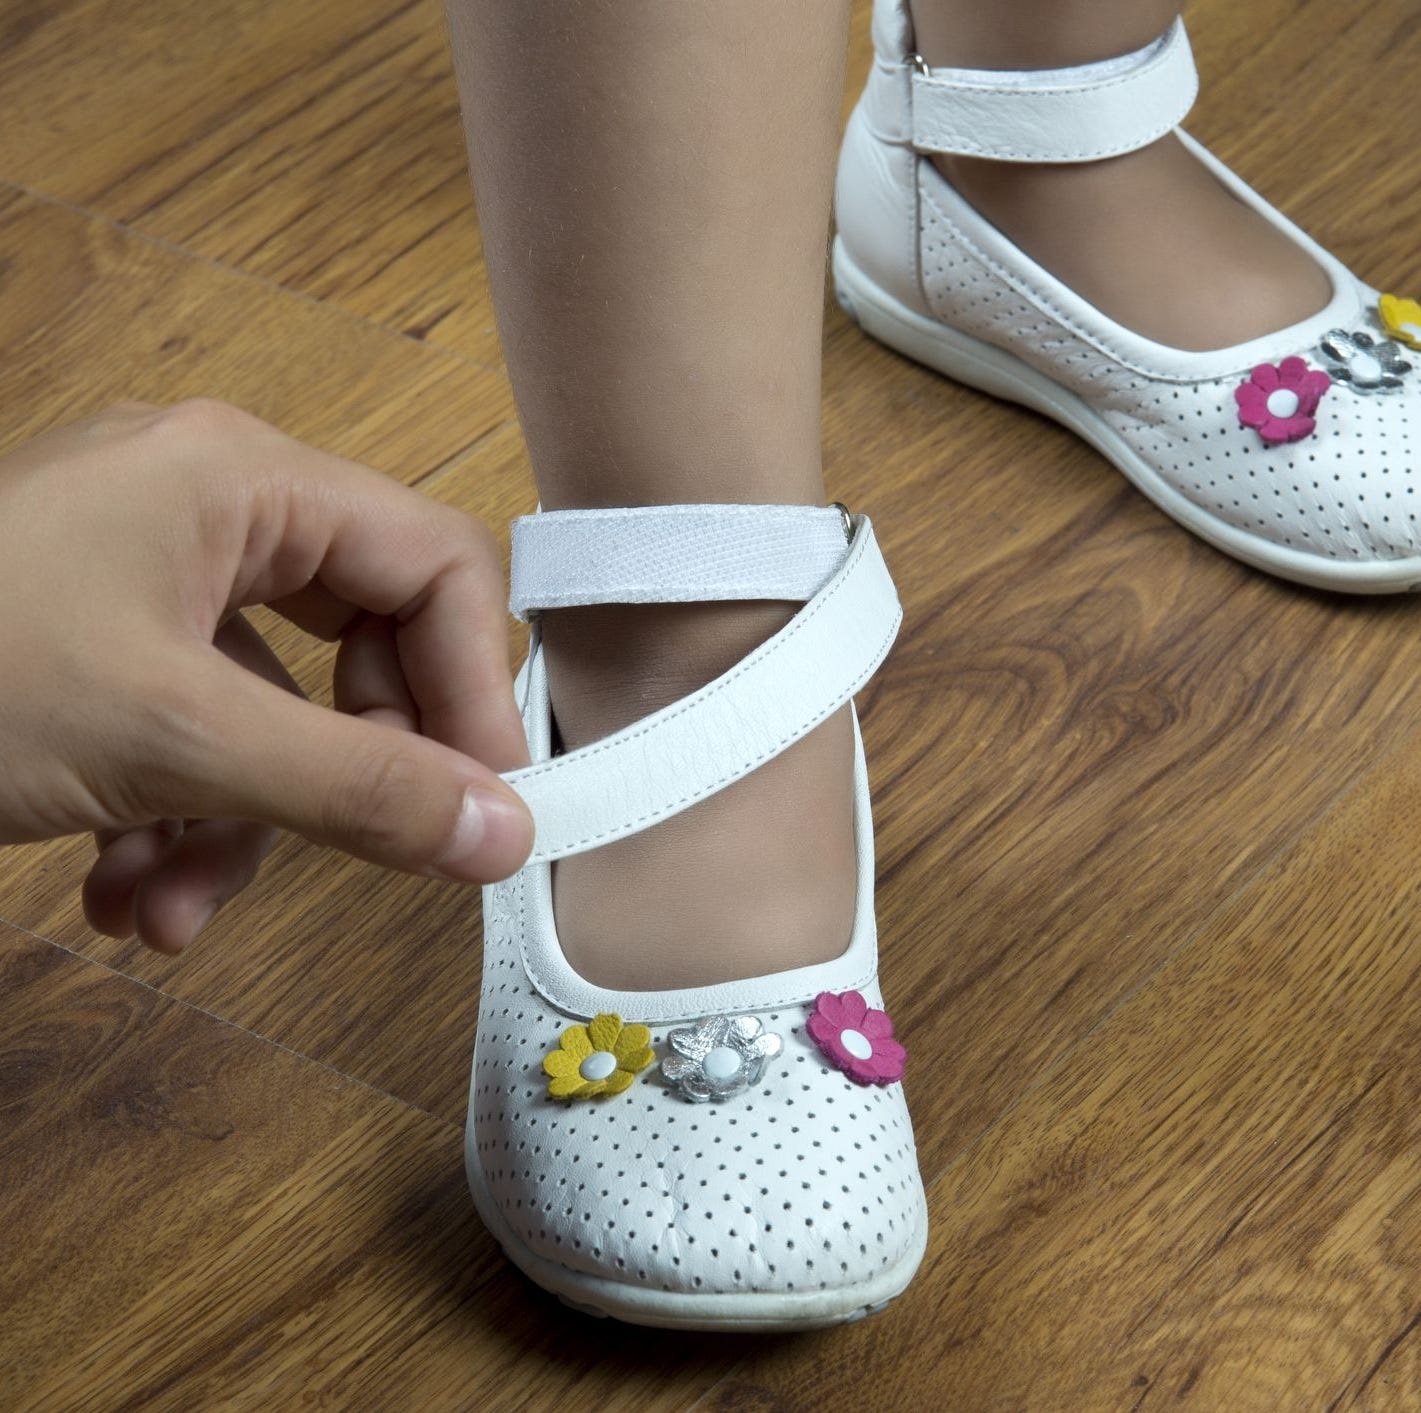 Girl, 4, hospitalized with life-threatening sepsis after trying on shoes without socks